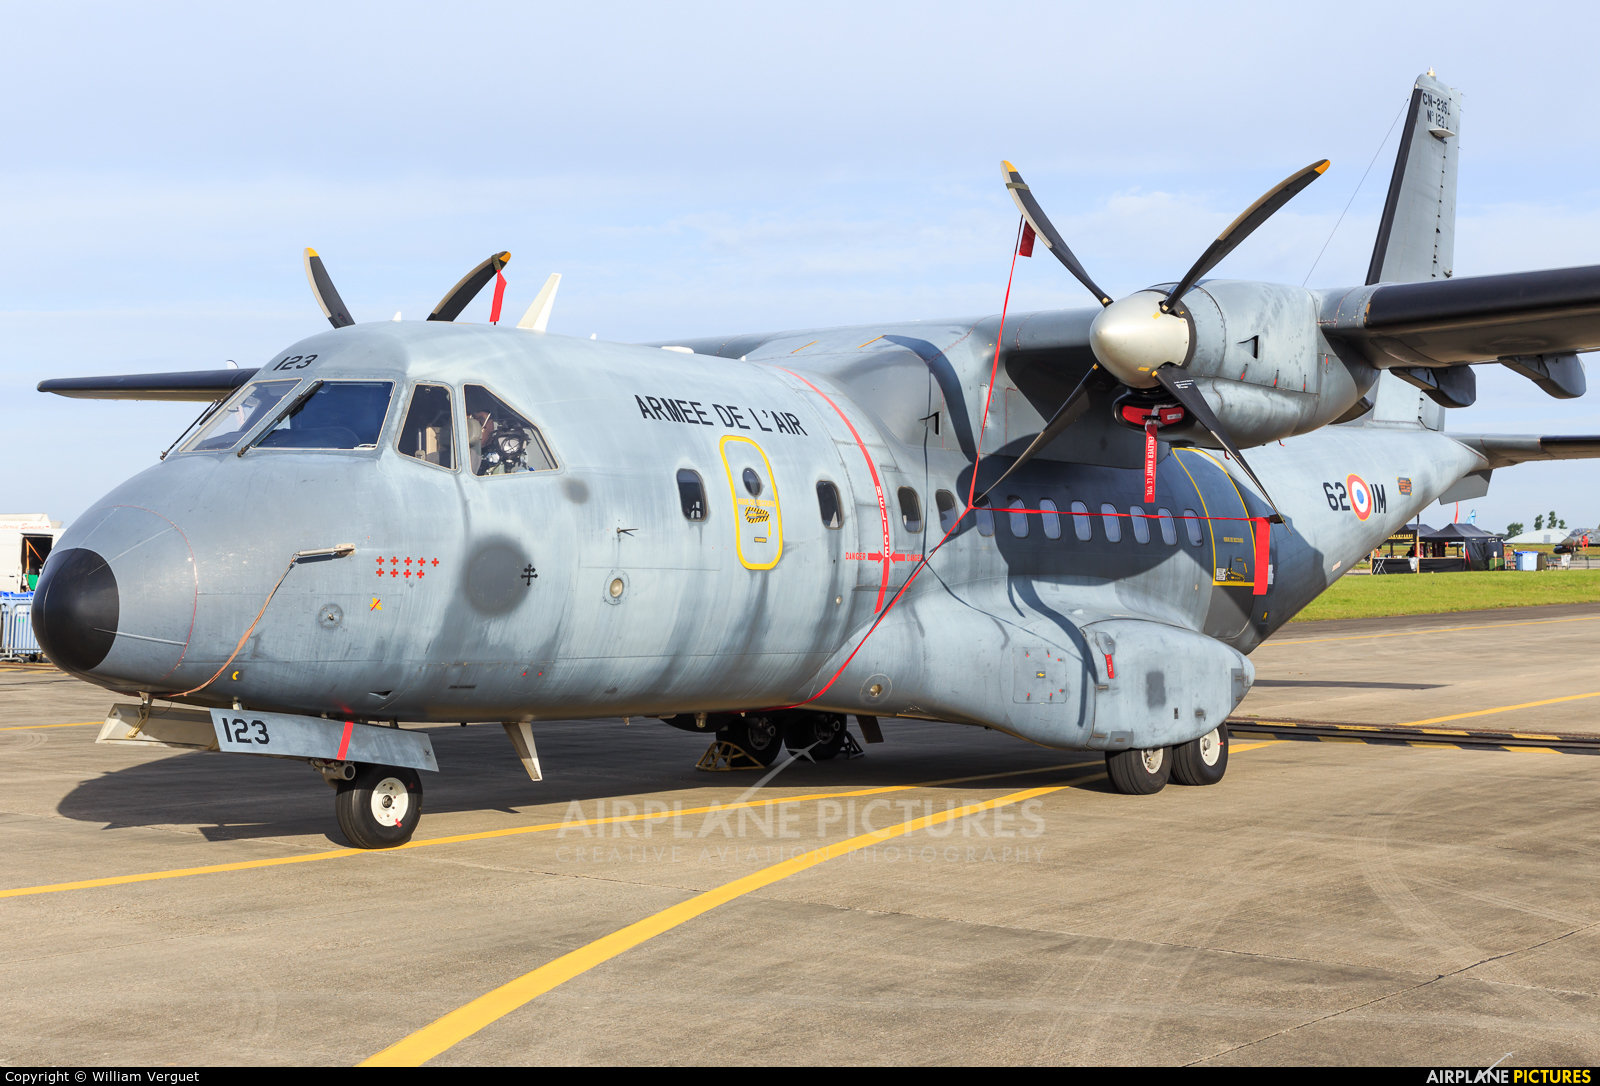 France - Air Force 62-IM aircraft at Evreux Fauville